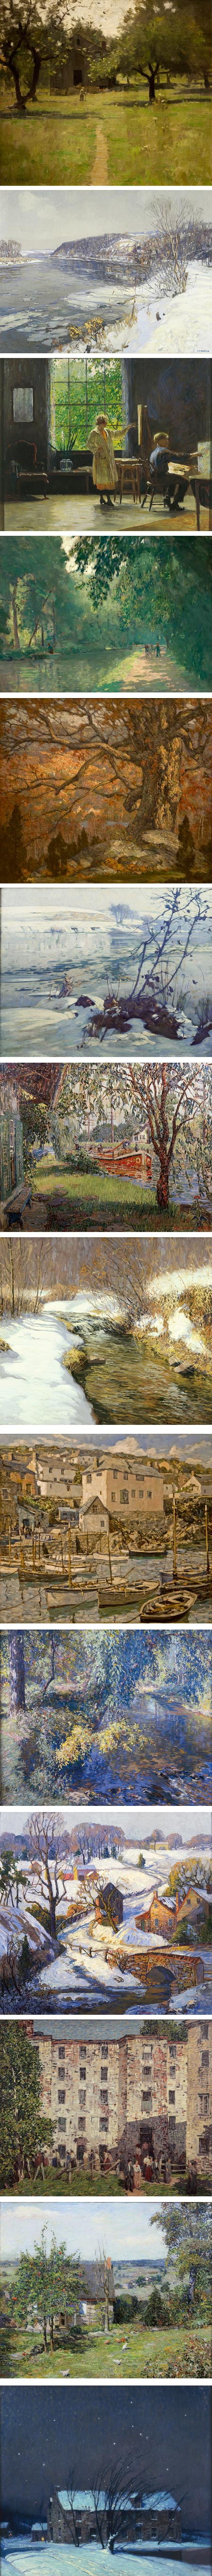 The Paainterly Voice, Pennsylvania Impressionism - William L. Lathrop, Edward Redfield, Daniel Garber, Rae Sloan Bredin, Arthur Meltzer, Charles Rosen, M. Elizabeth Price, Kenneth Nunamaker, Walter Elmer Schofield, Roy C. Nuse, Fern I. Coppedge, Robert Spencer, Roy Francis Taylor, George Sotter)